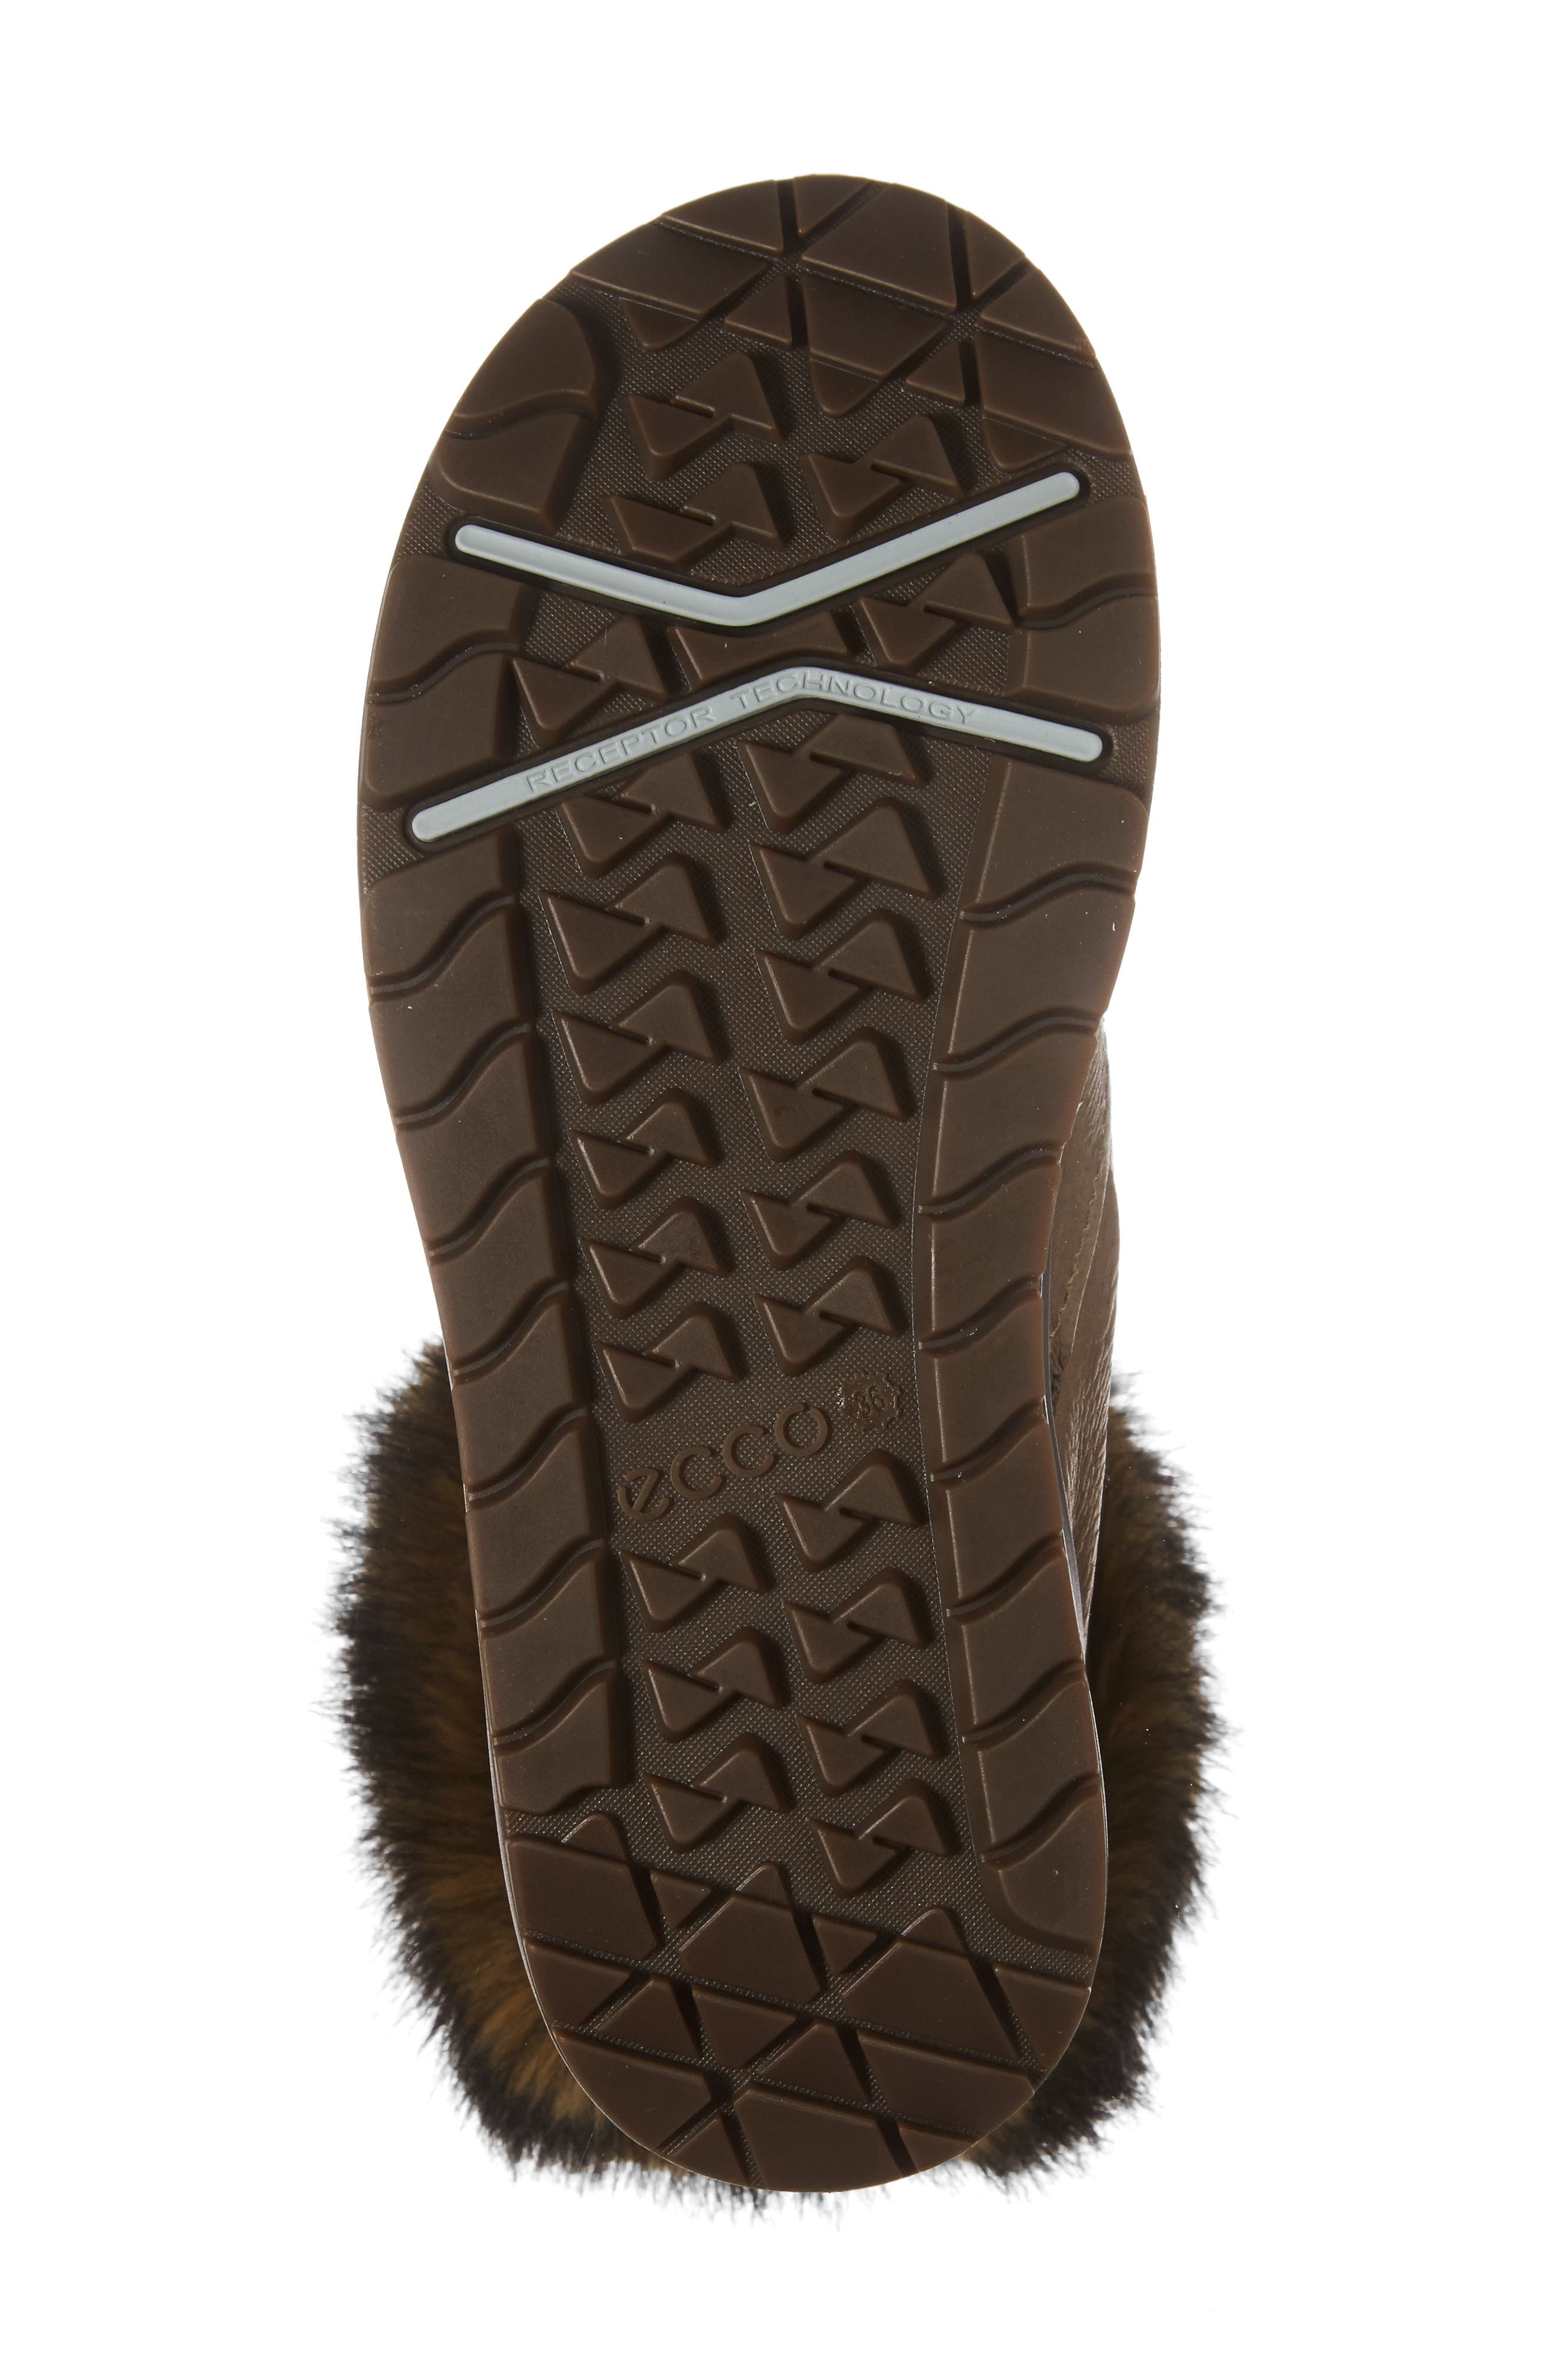 Noyce Siberia Hydromax Water Resistant Winter Boot with Faux Fur Trim,                             Alternate thumbnail 6, color,                             212